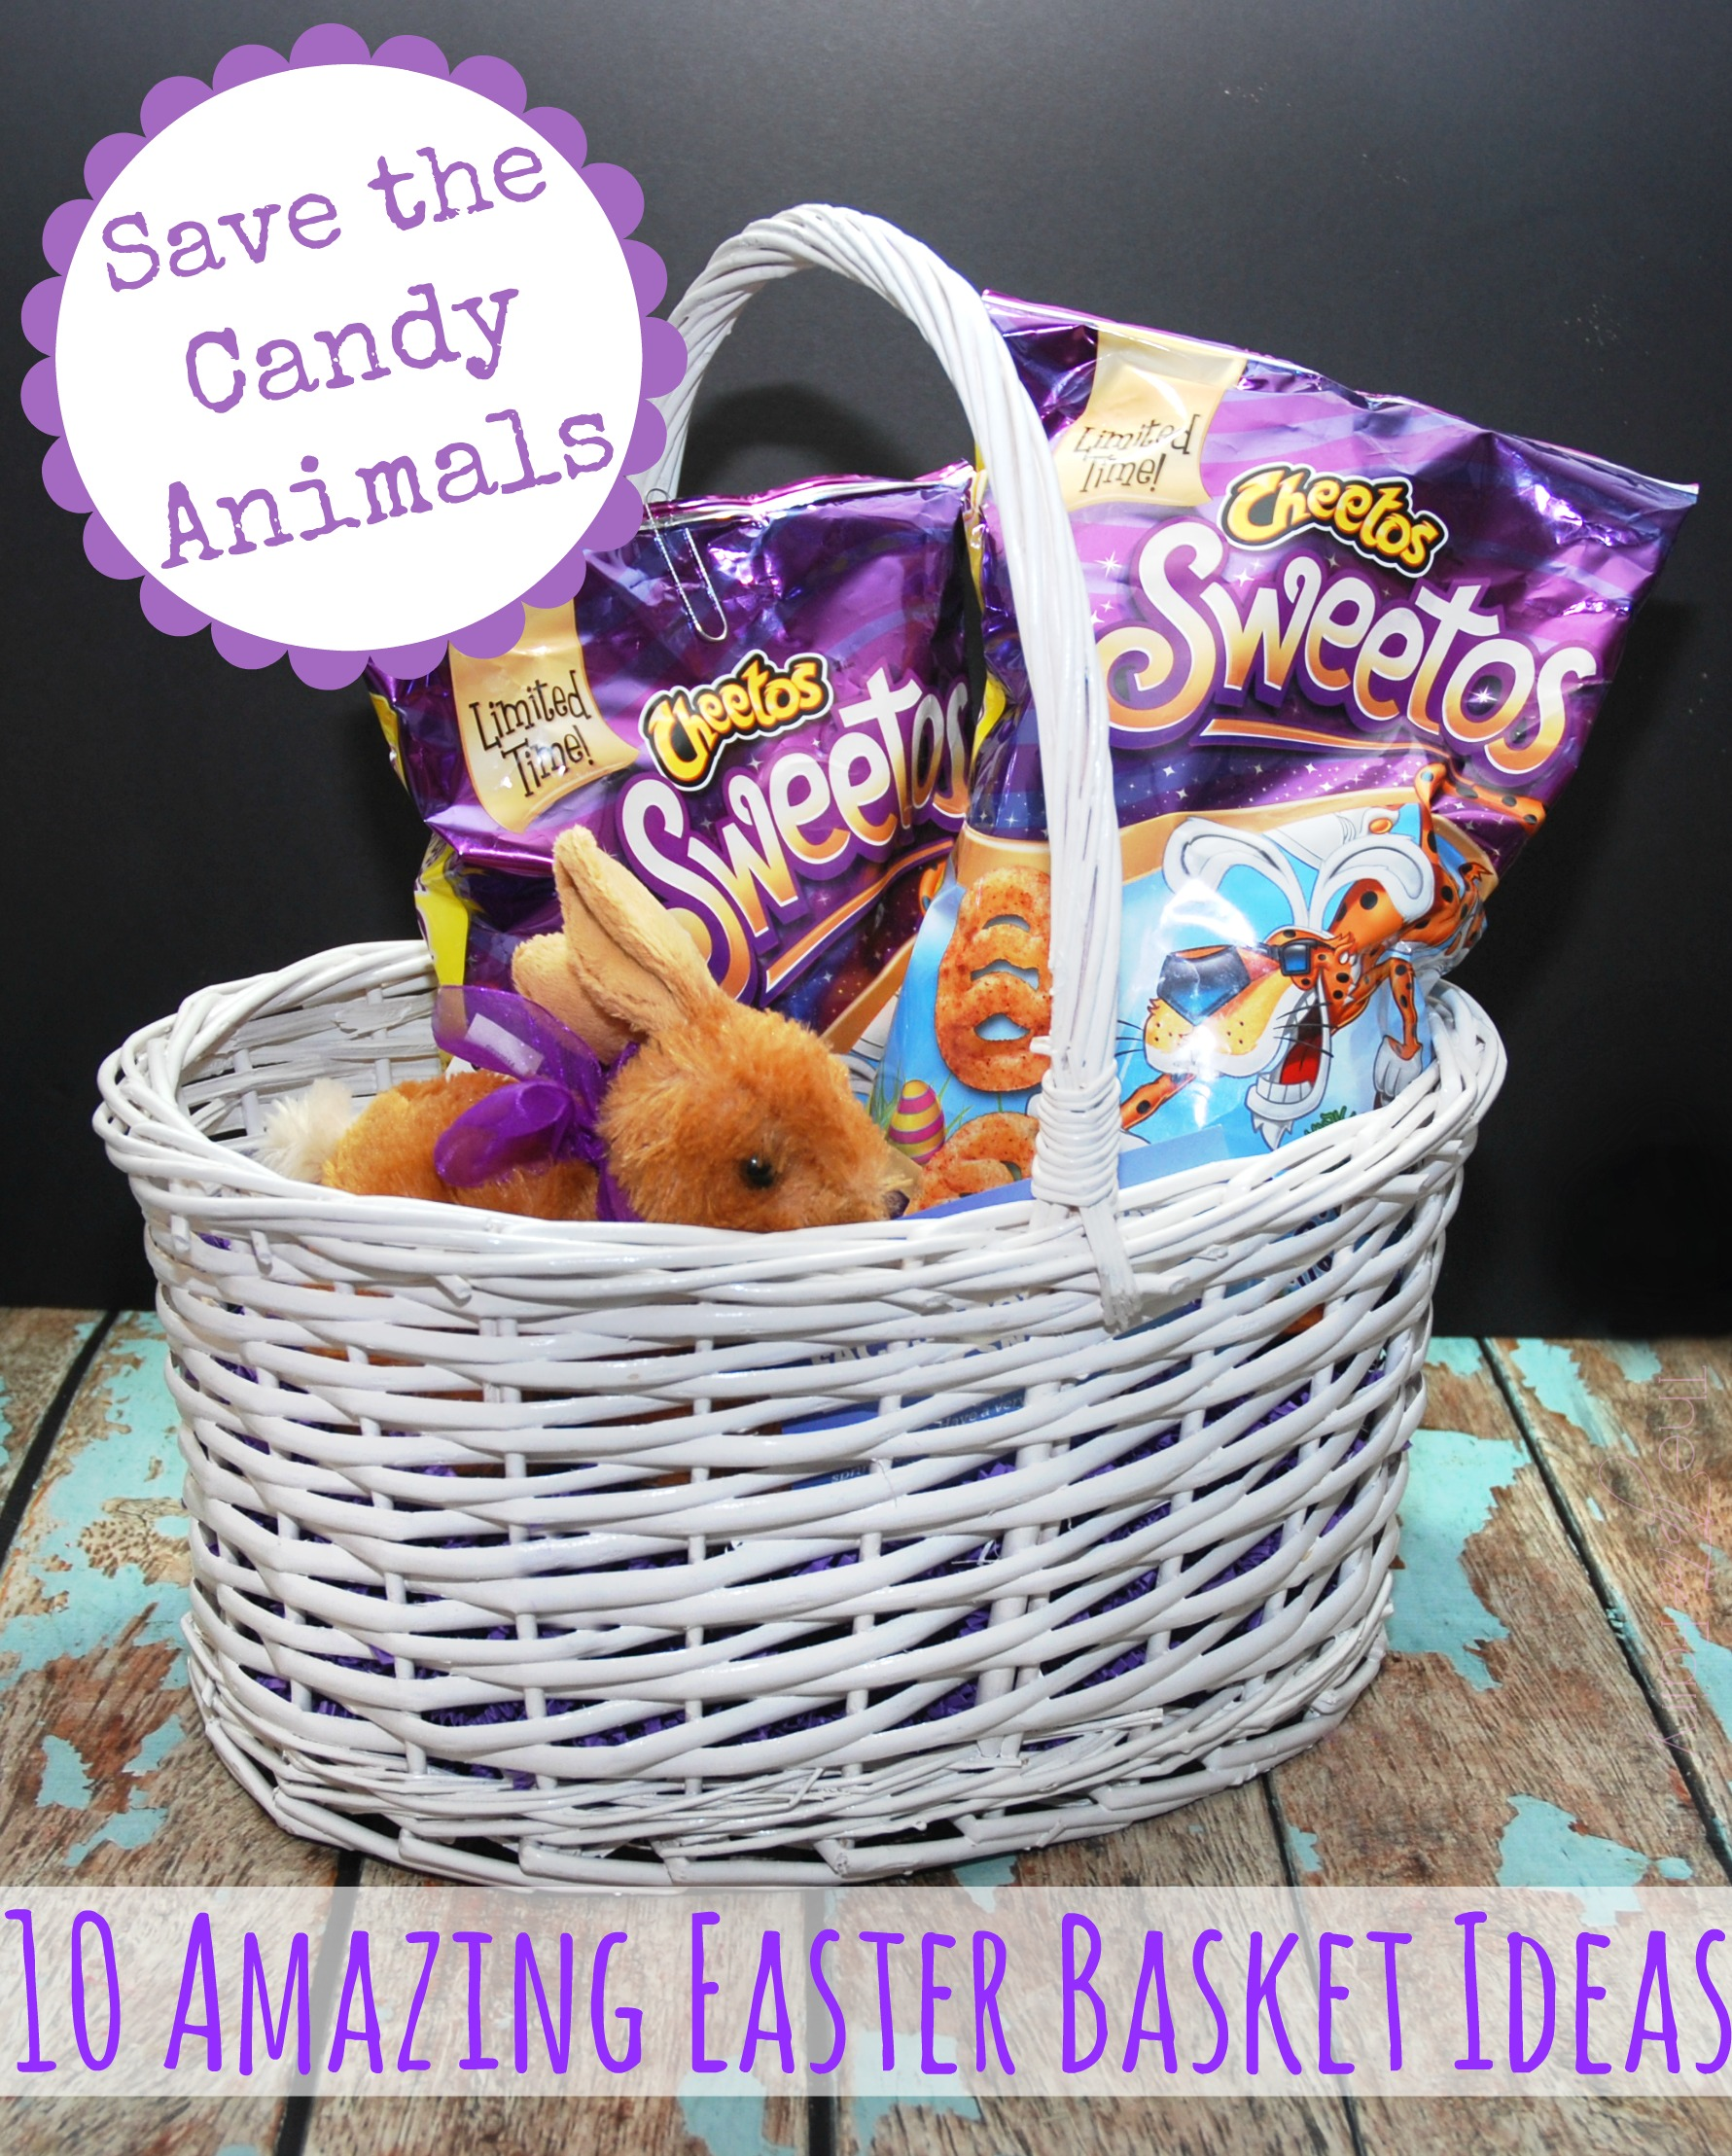 Save the candy animals with 10 amazing easter basket ideas the save the candy animals with 10 amazing easter basket ideas negle Images